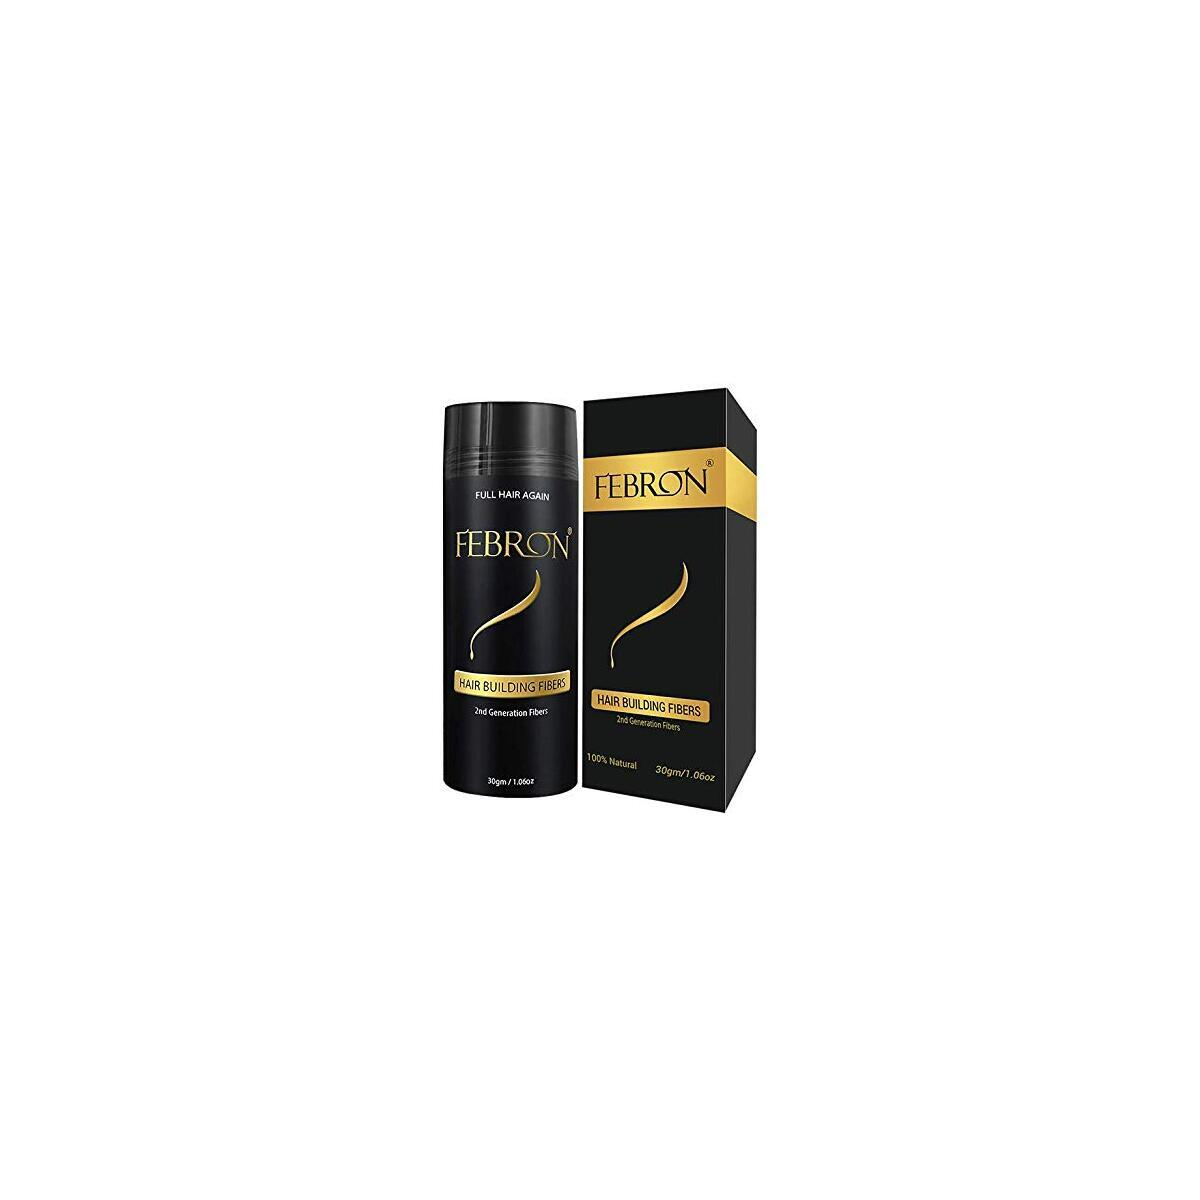 Febron hair fibers for thinning hair BLACK, Great solution for hair loss.